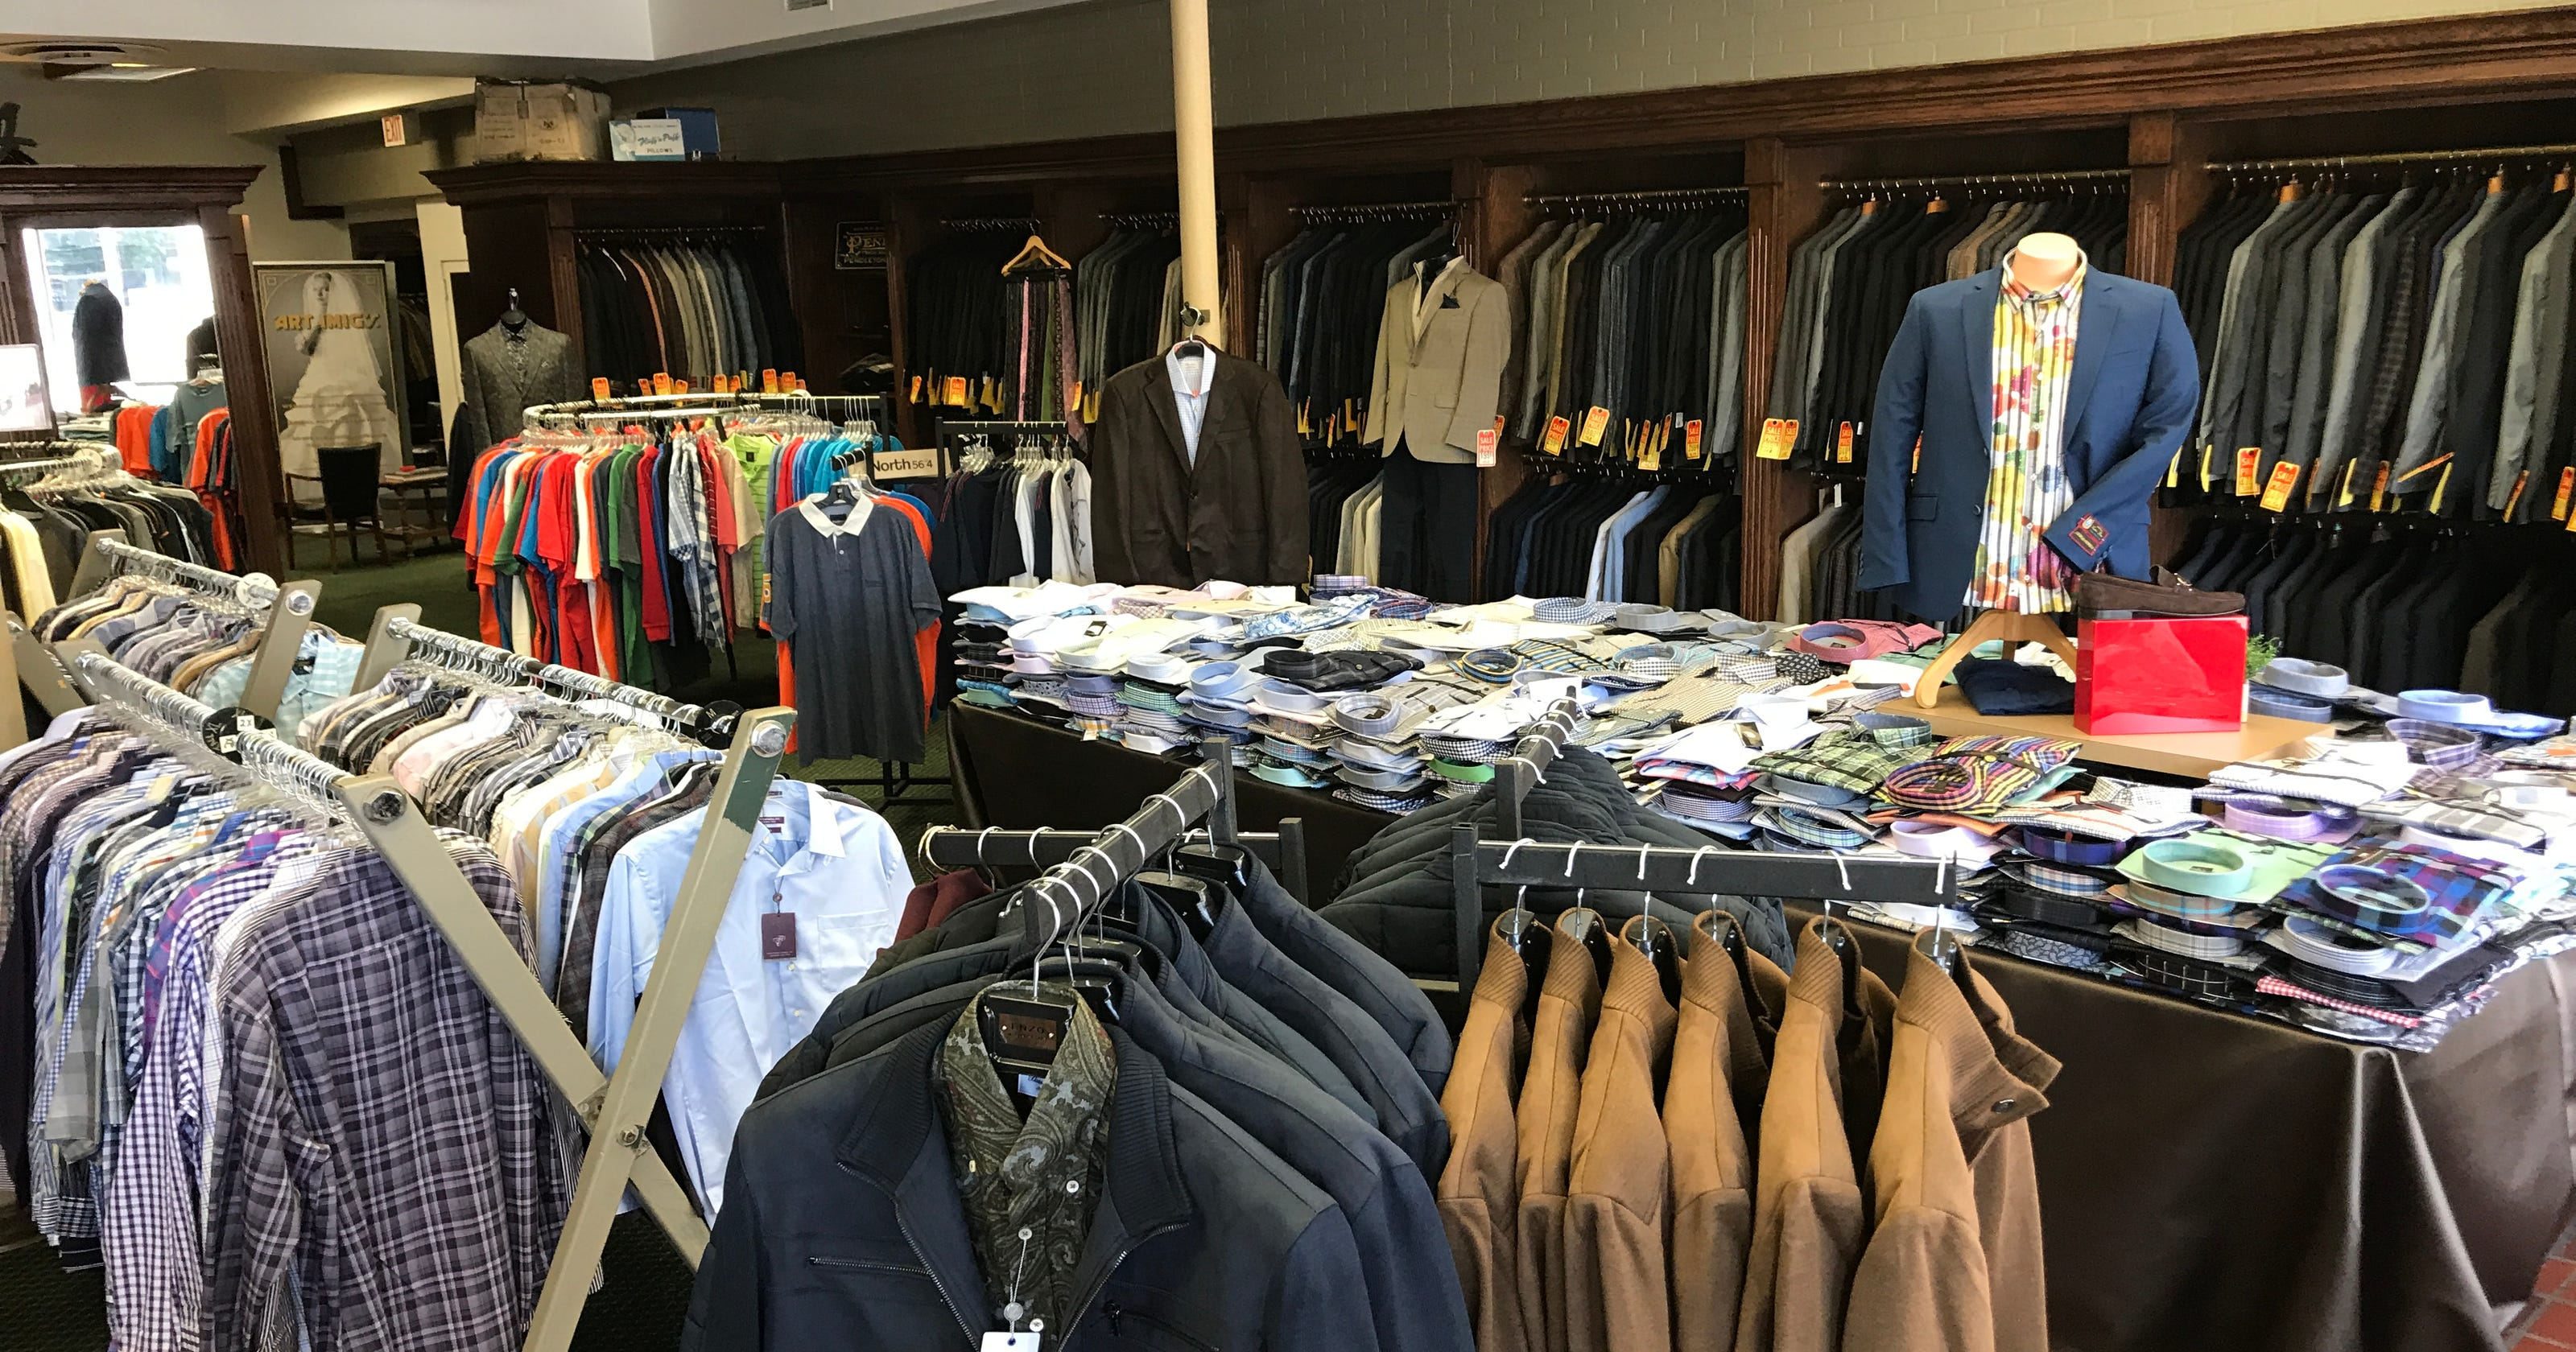 Art Imigs to open second mens clothing store